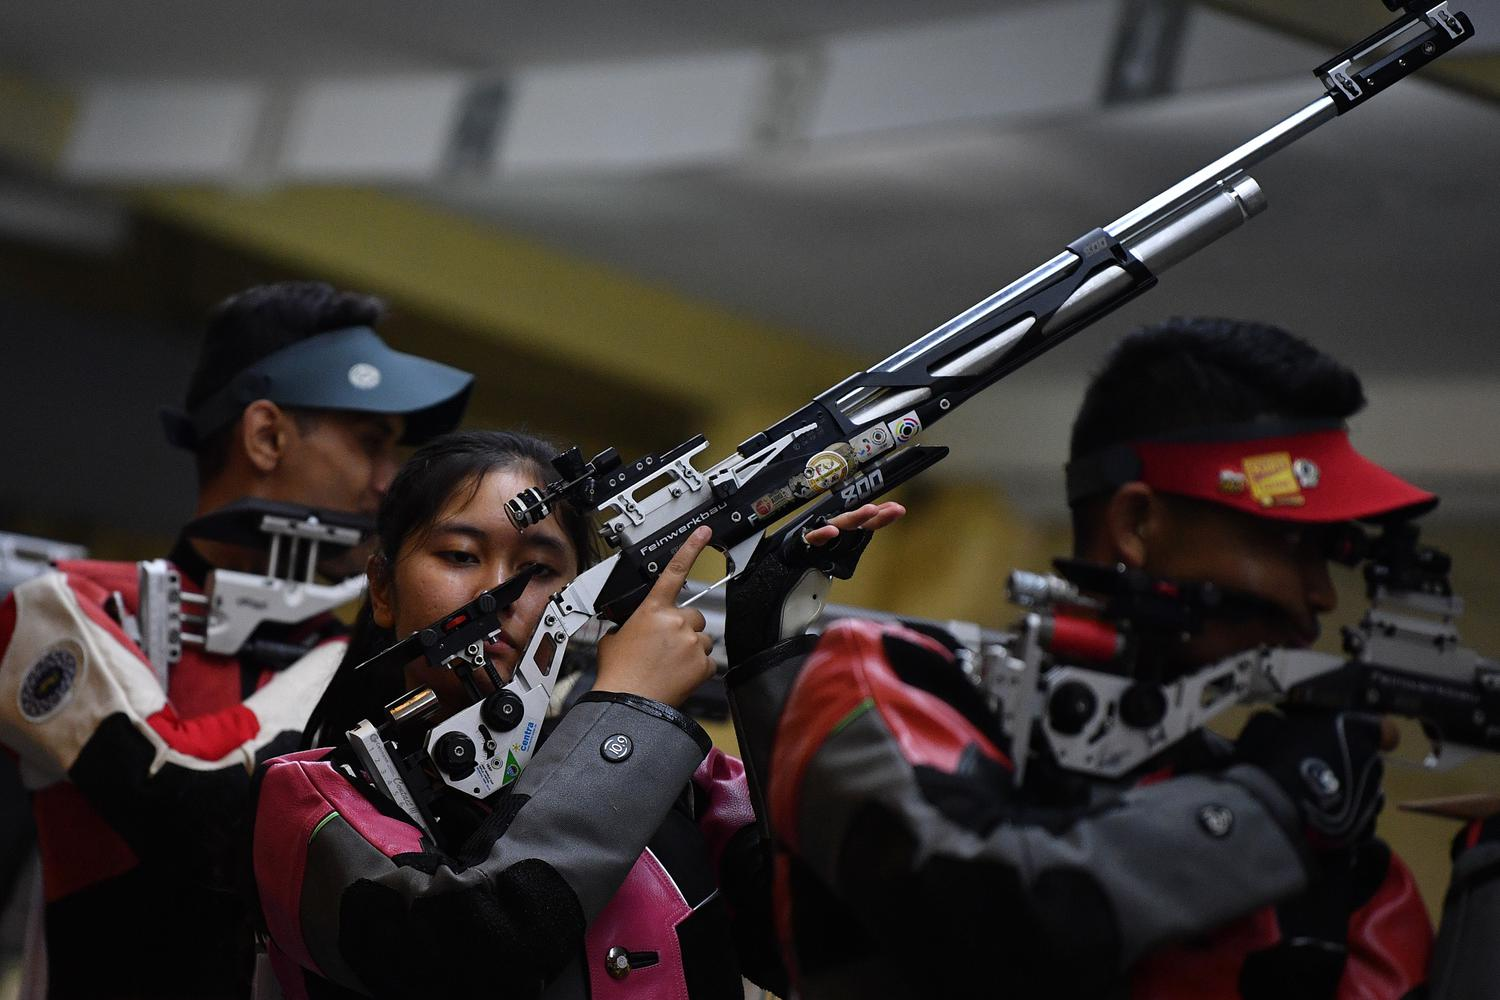 EMAS MENEMBAK 10 METER AIR RIFLE MIXED TEAM